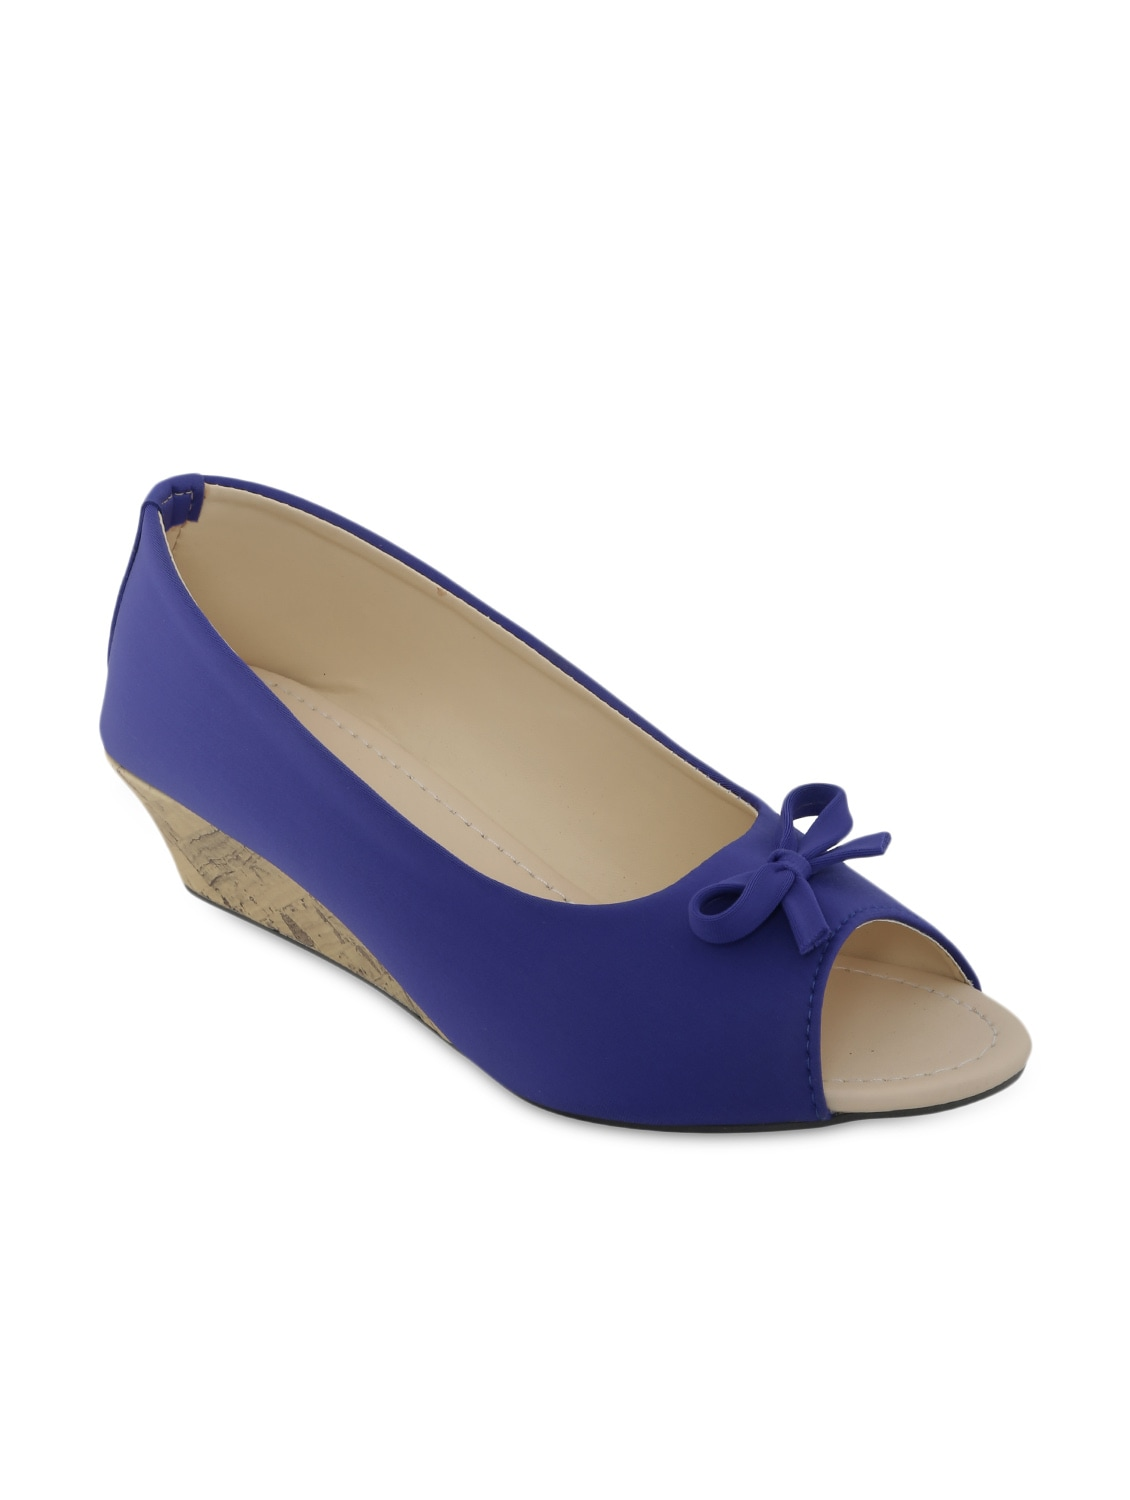 f43b563dedf Buy Blue Peep-toe Wedges by Zachho - Online shopping for Wedges in India